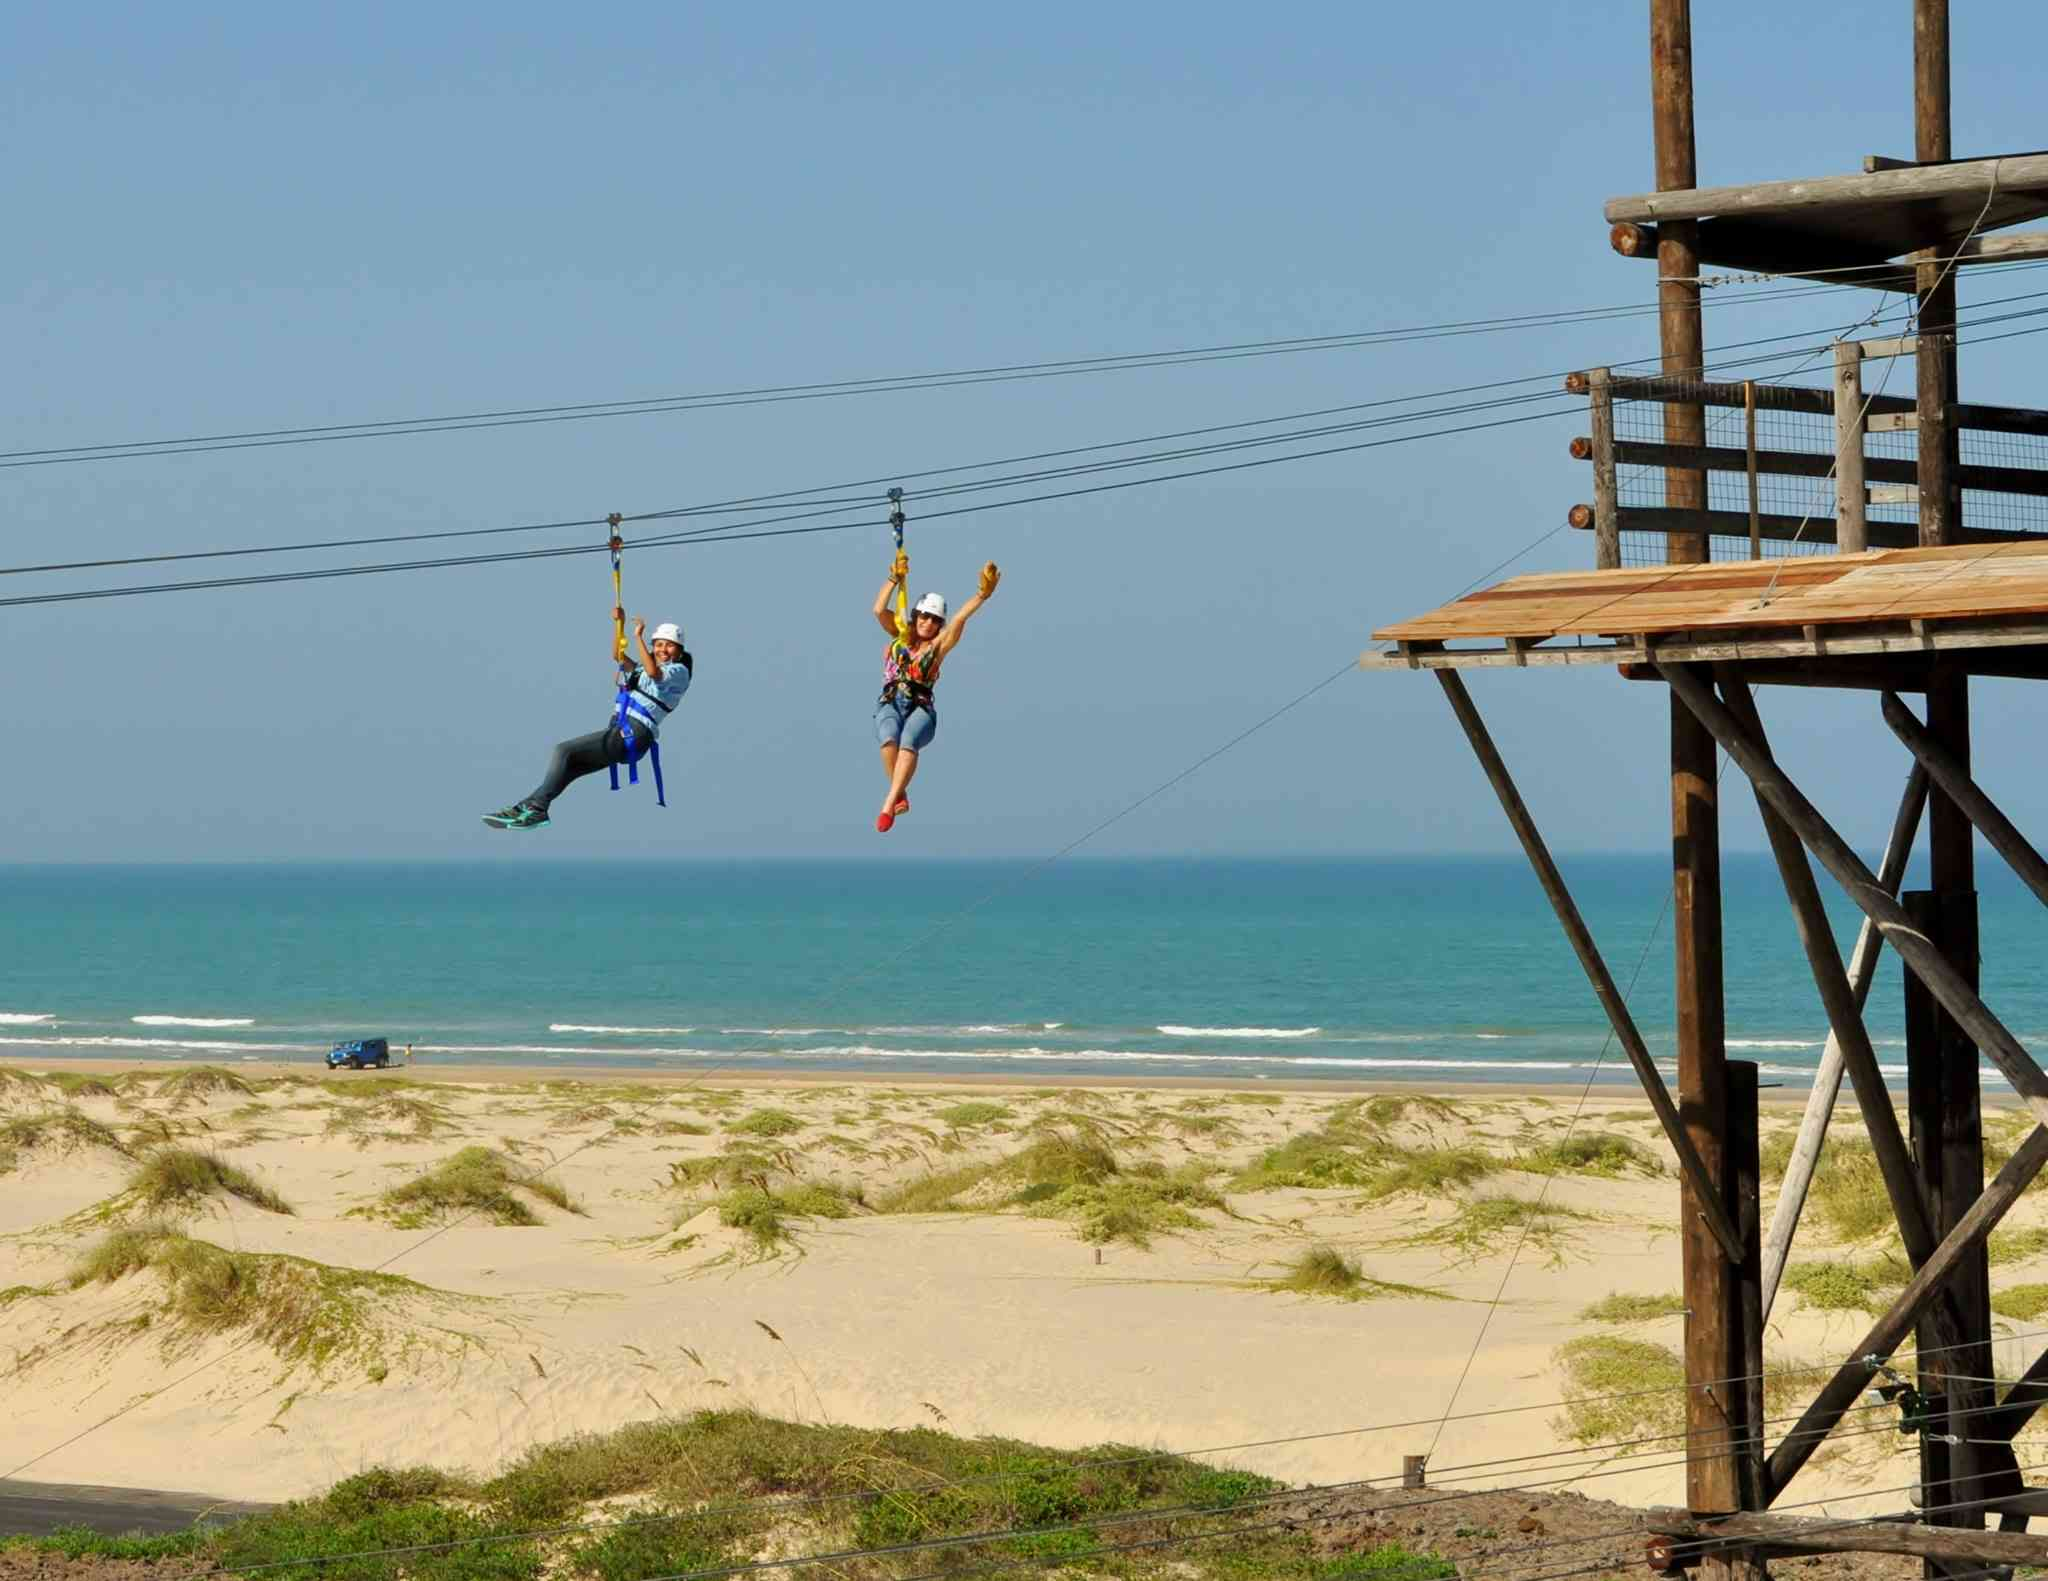 Two people zipline above the sand and sea